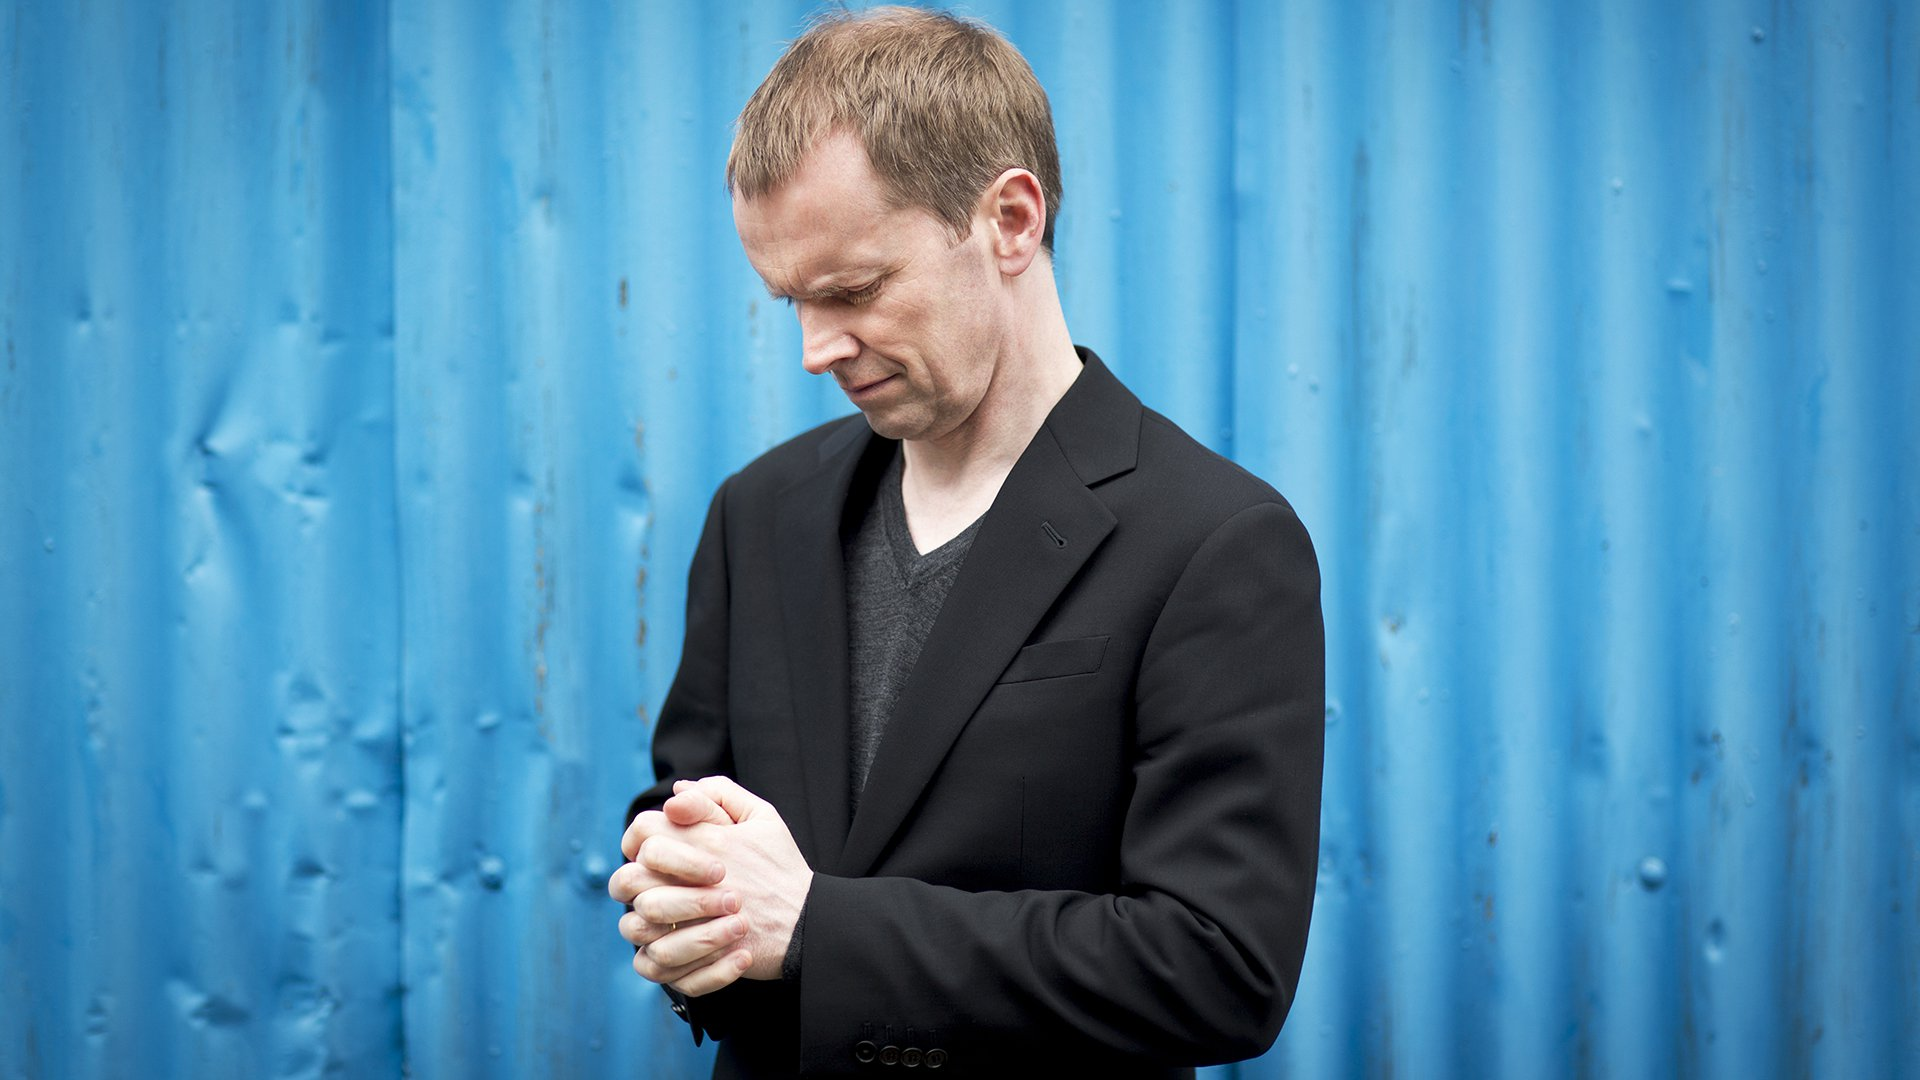 Steven Osborne is wearing a black jacket and black top, hands clasped, looking down contemplating. Blue corrugated metal background.